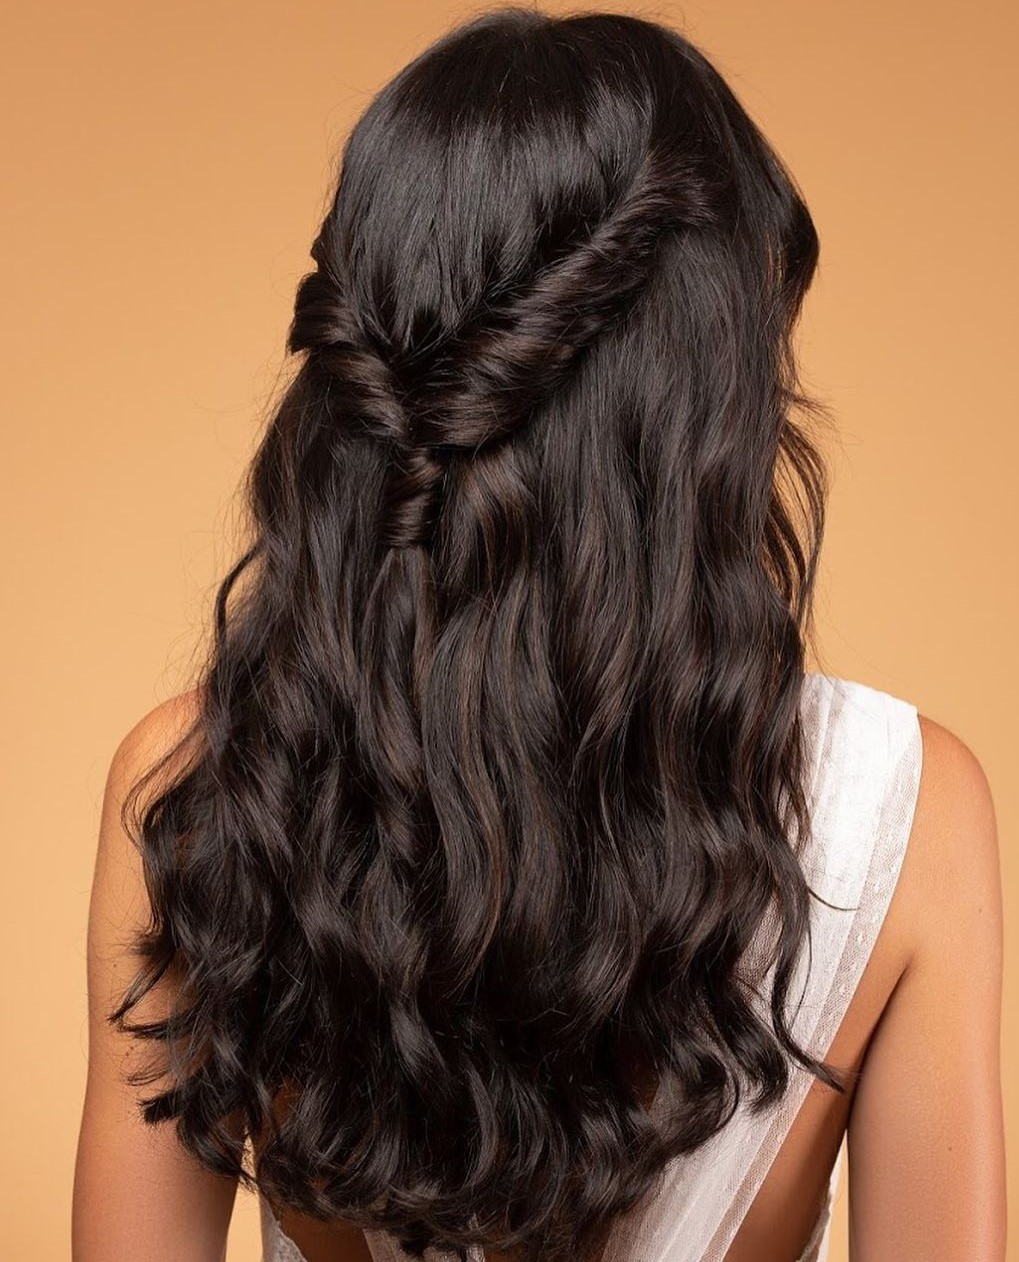 Half Up Half Down Curls with Twists and Pony